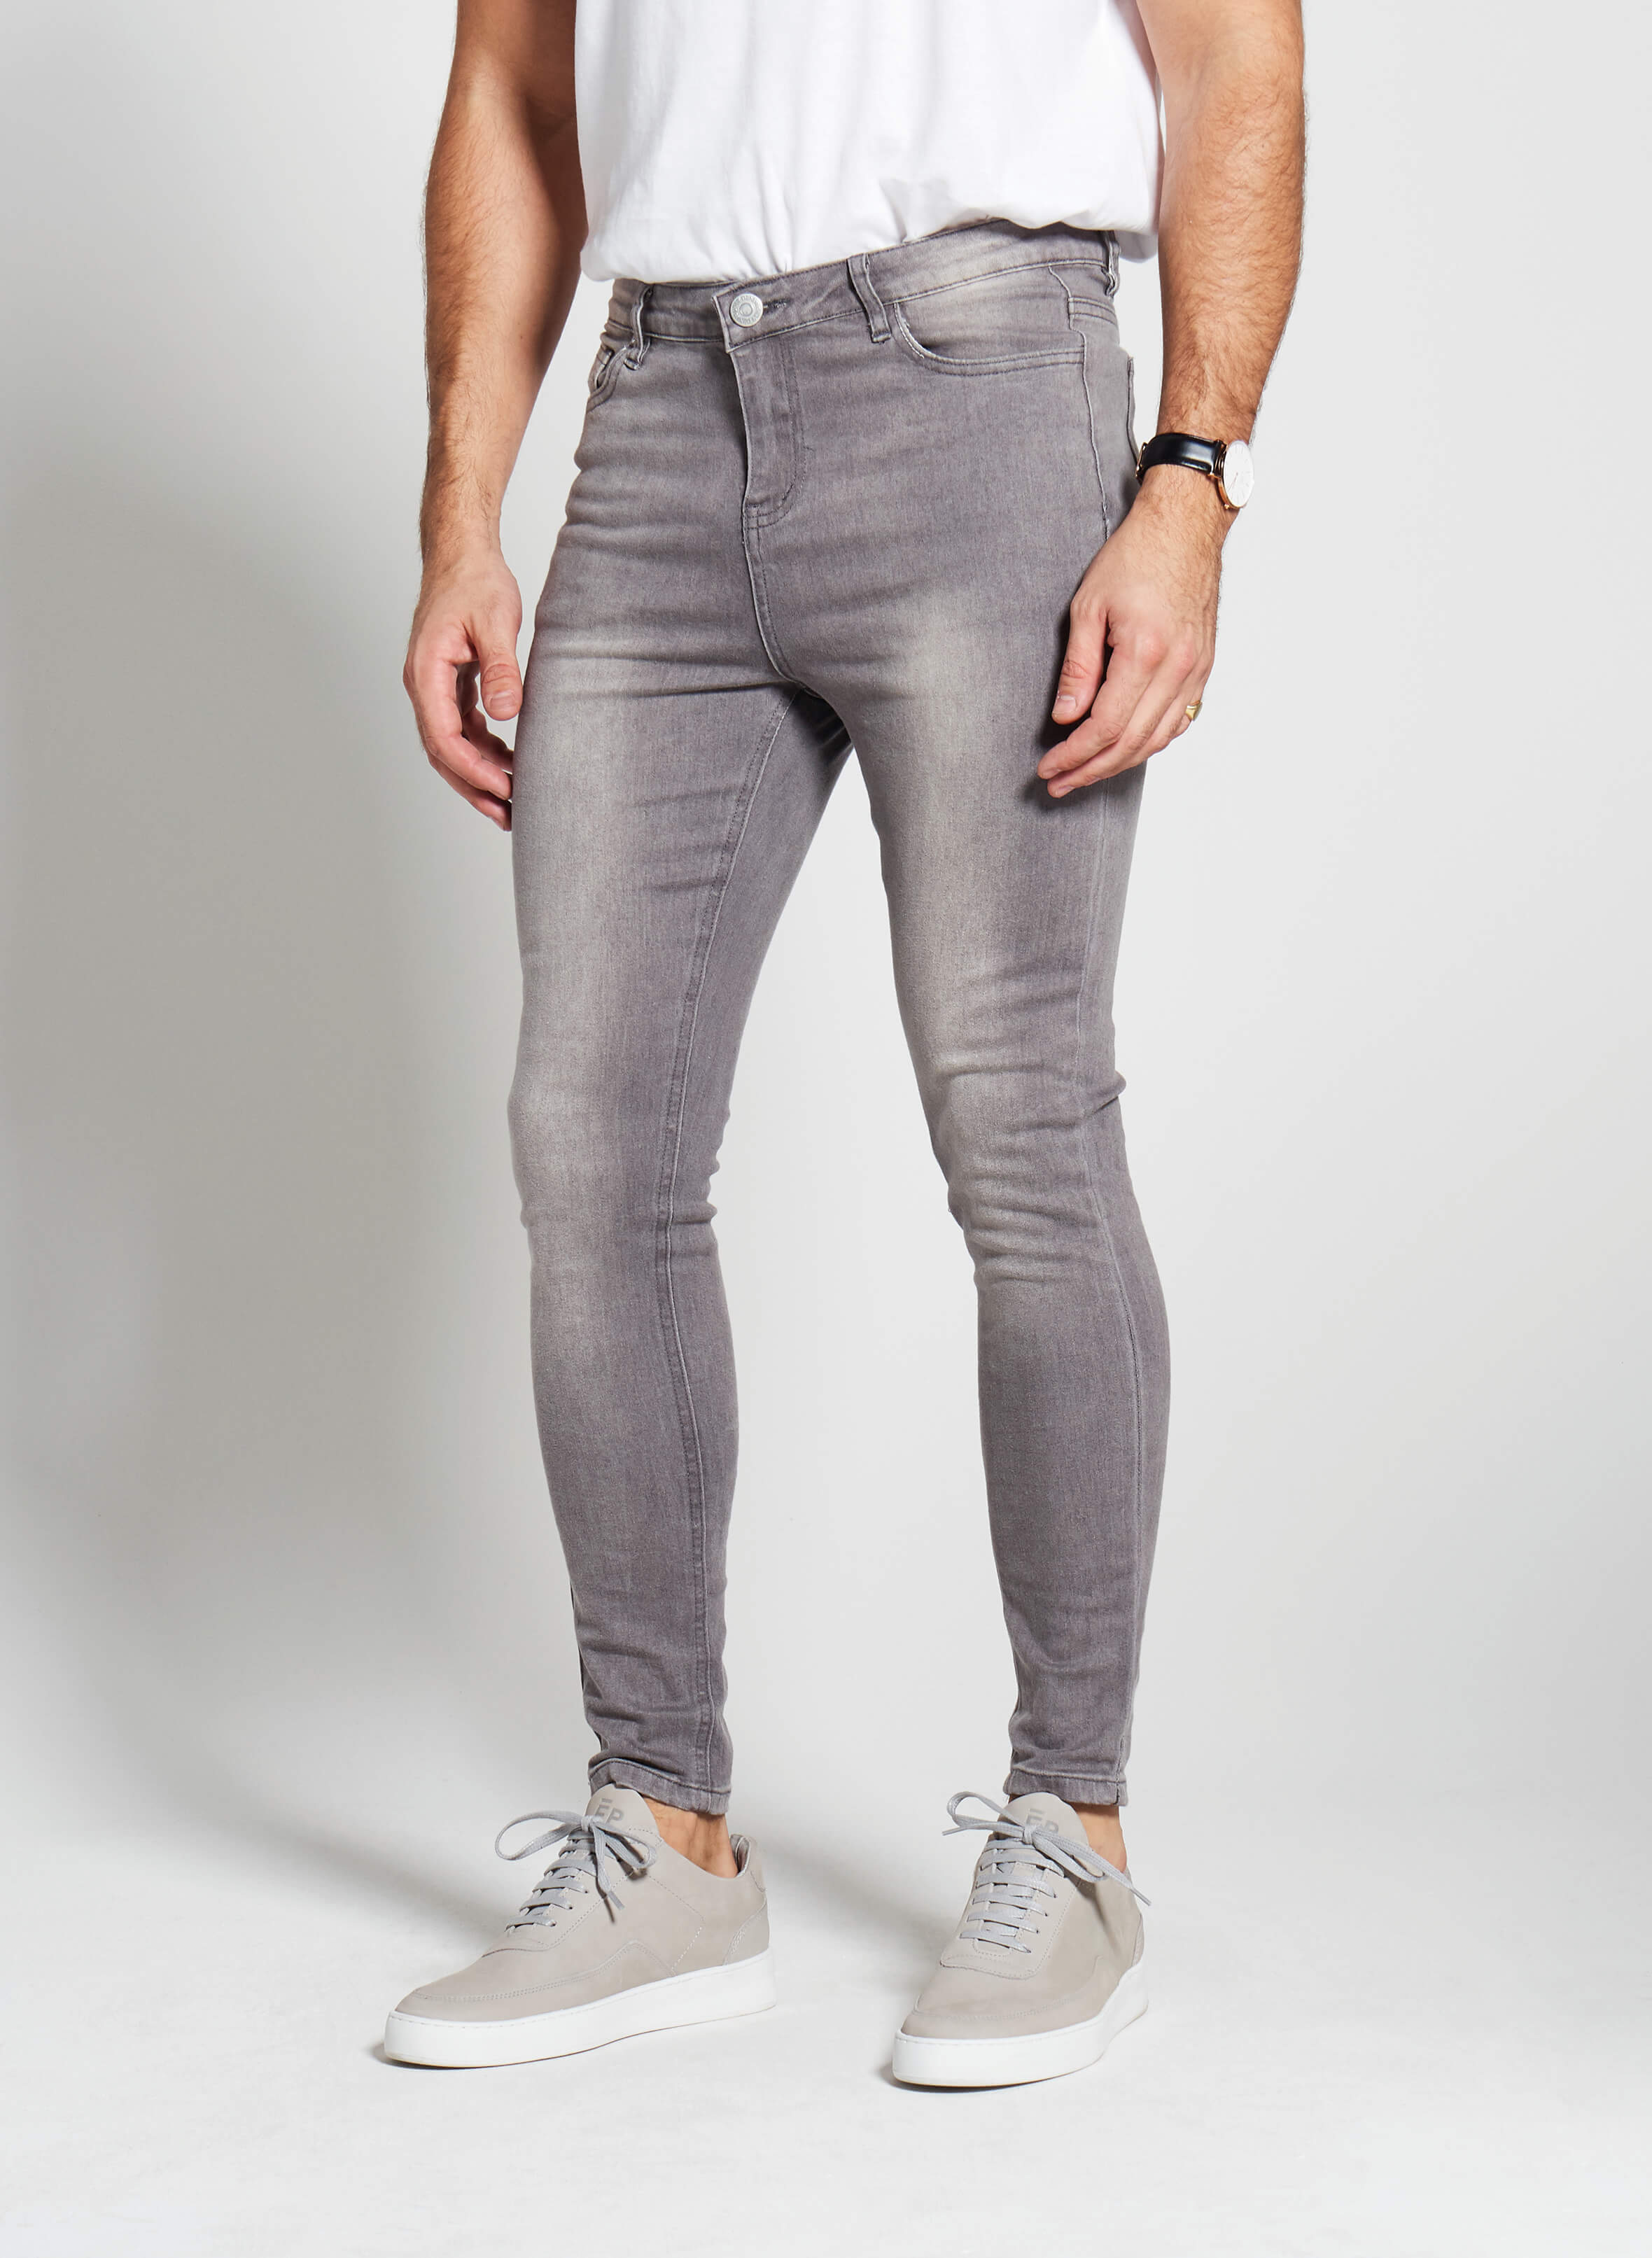 Denim Only® Spray On Jeans - Washed Grey - Spray On